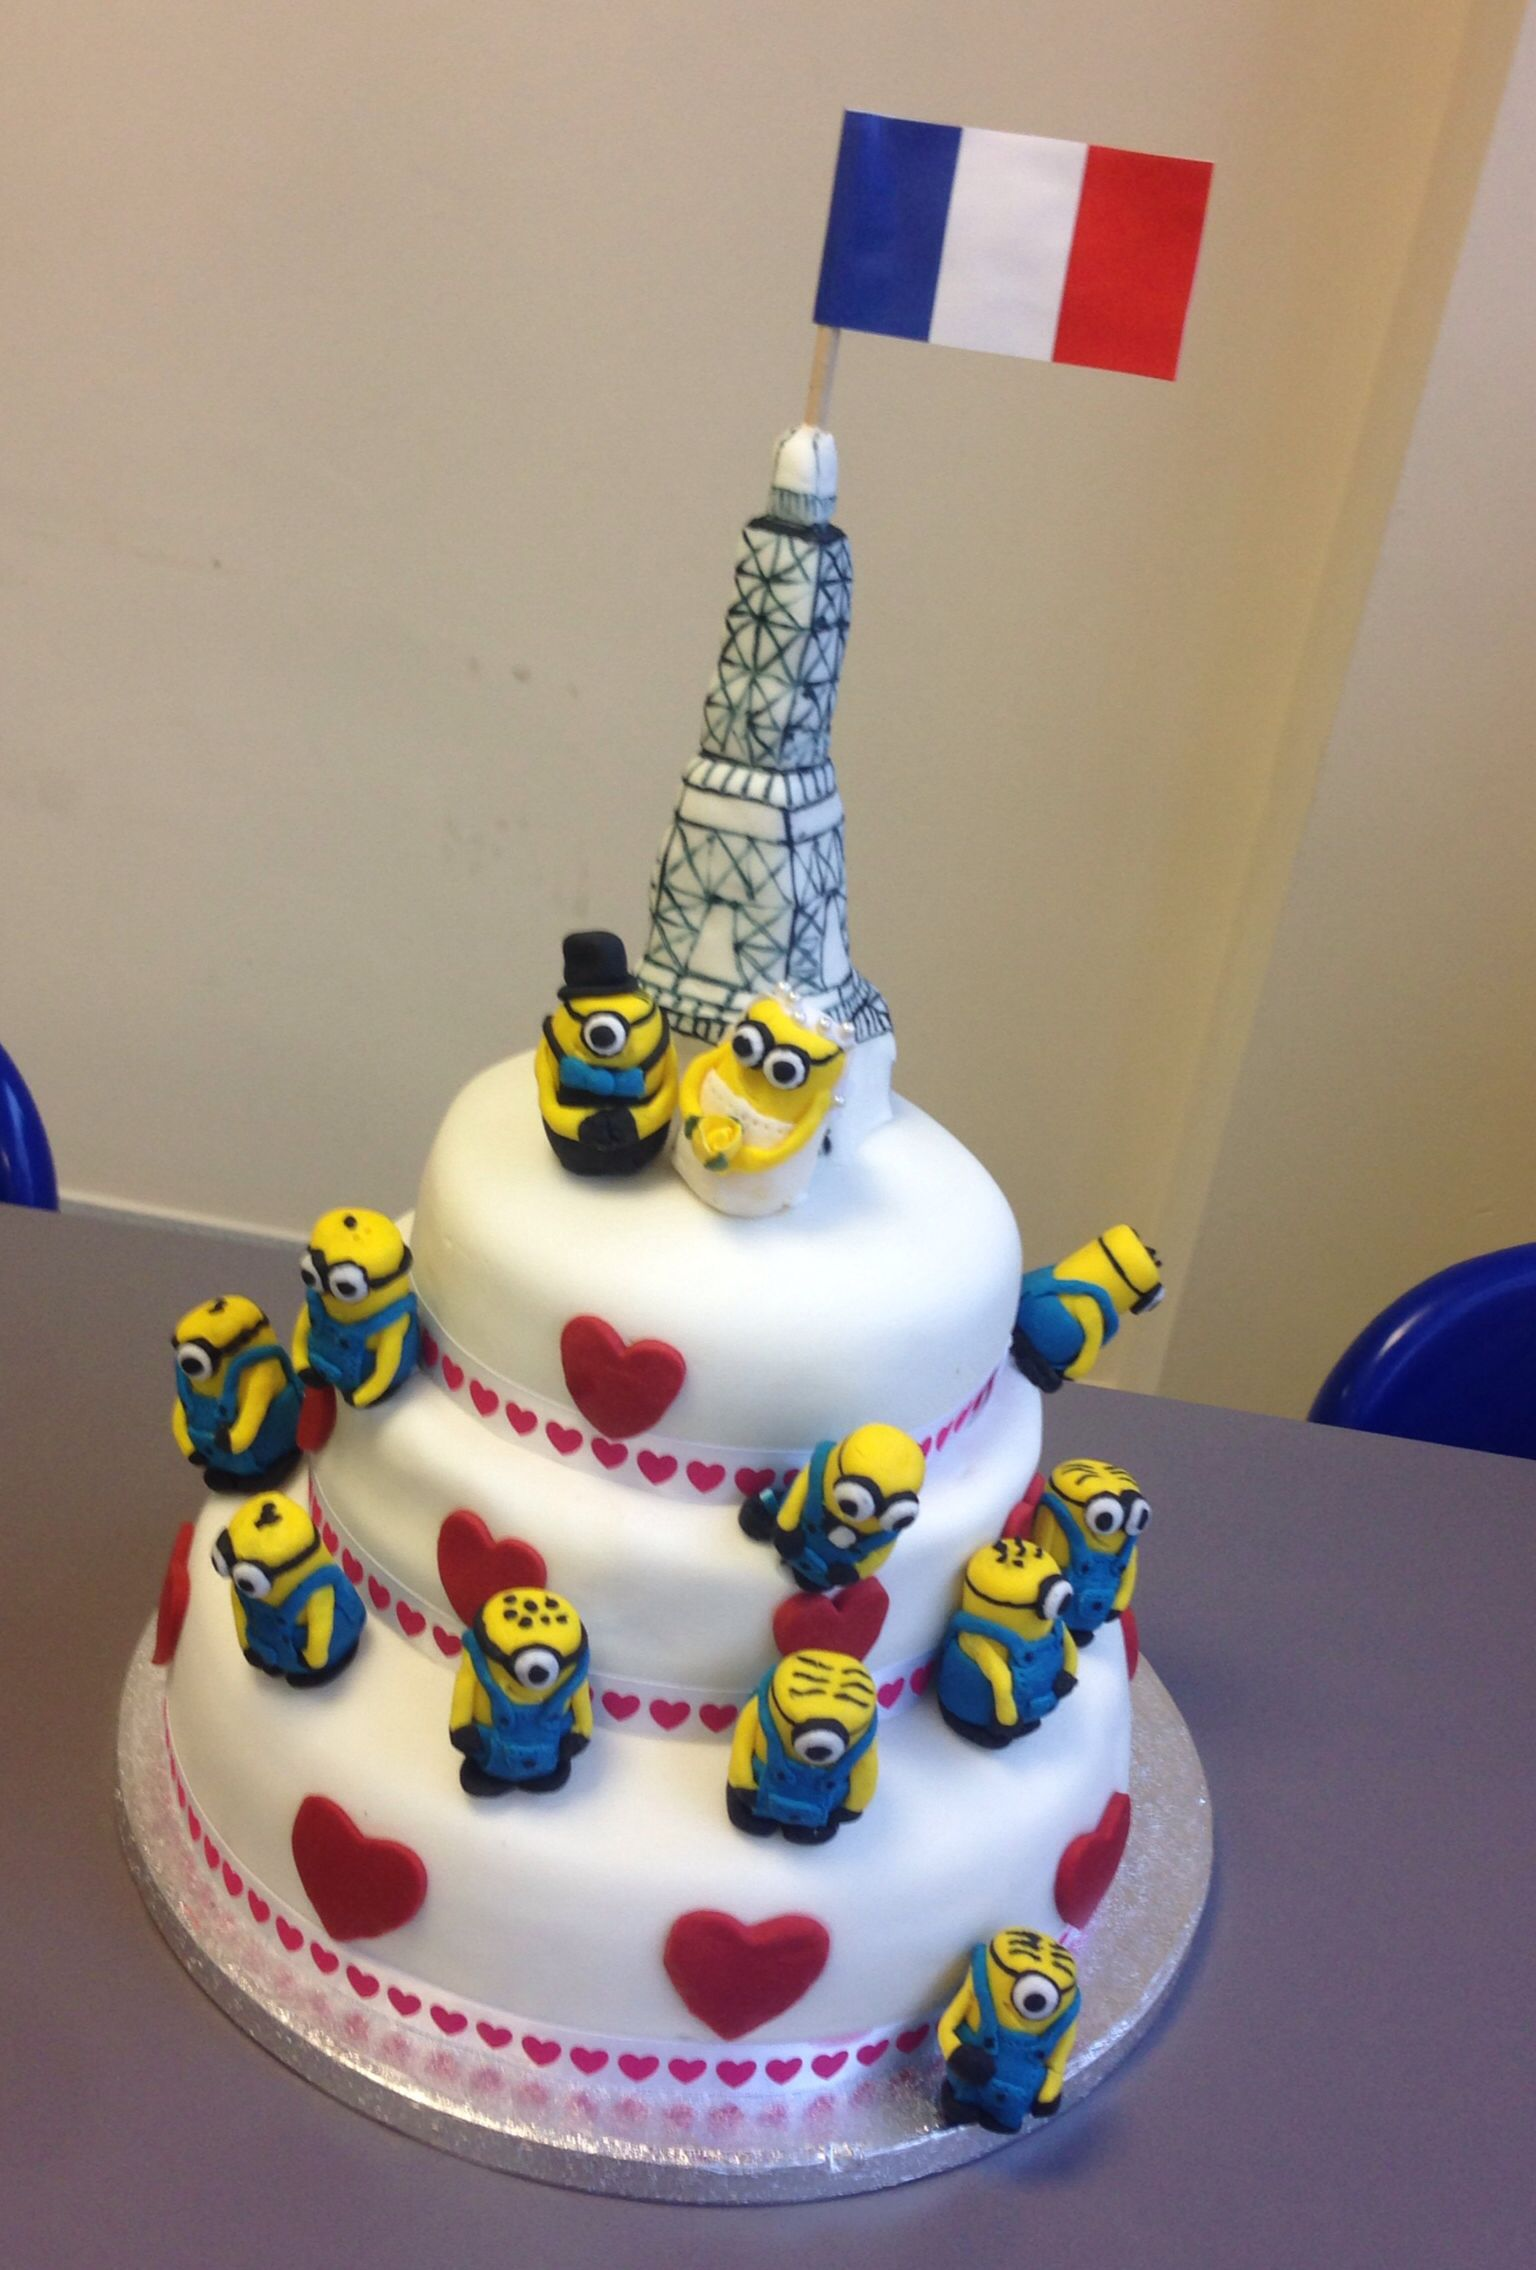 Minion Wedding Cake  Made this with two colleagues for the business     Minion Wedding Cake  Made this with two colleagues for the business  valentine bake off  We WON